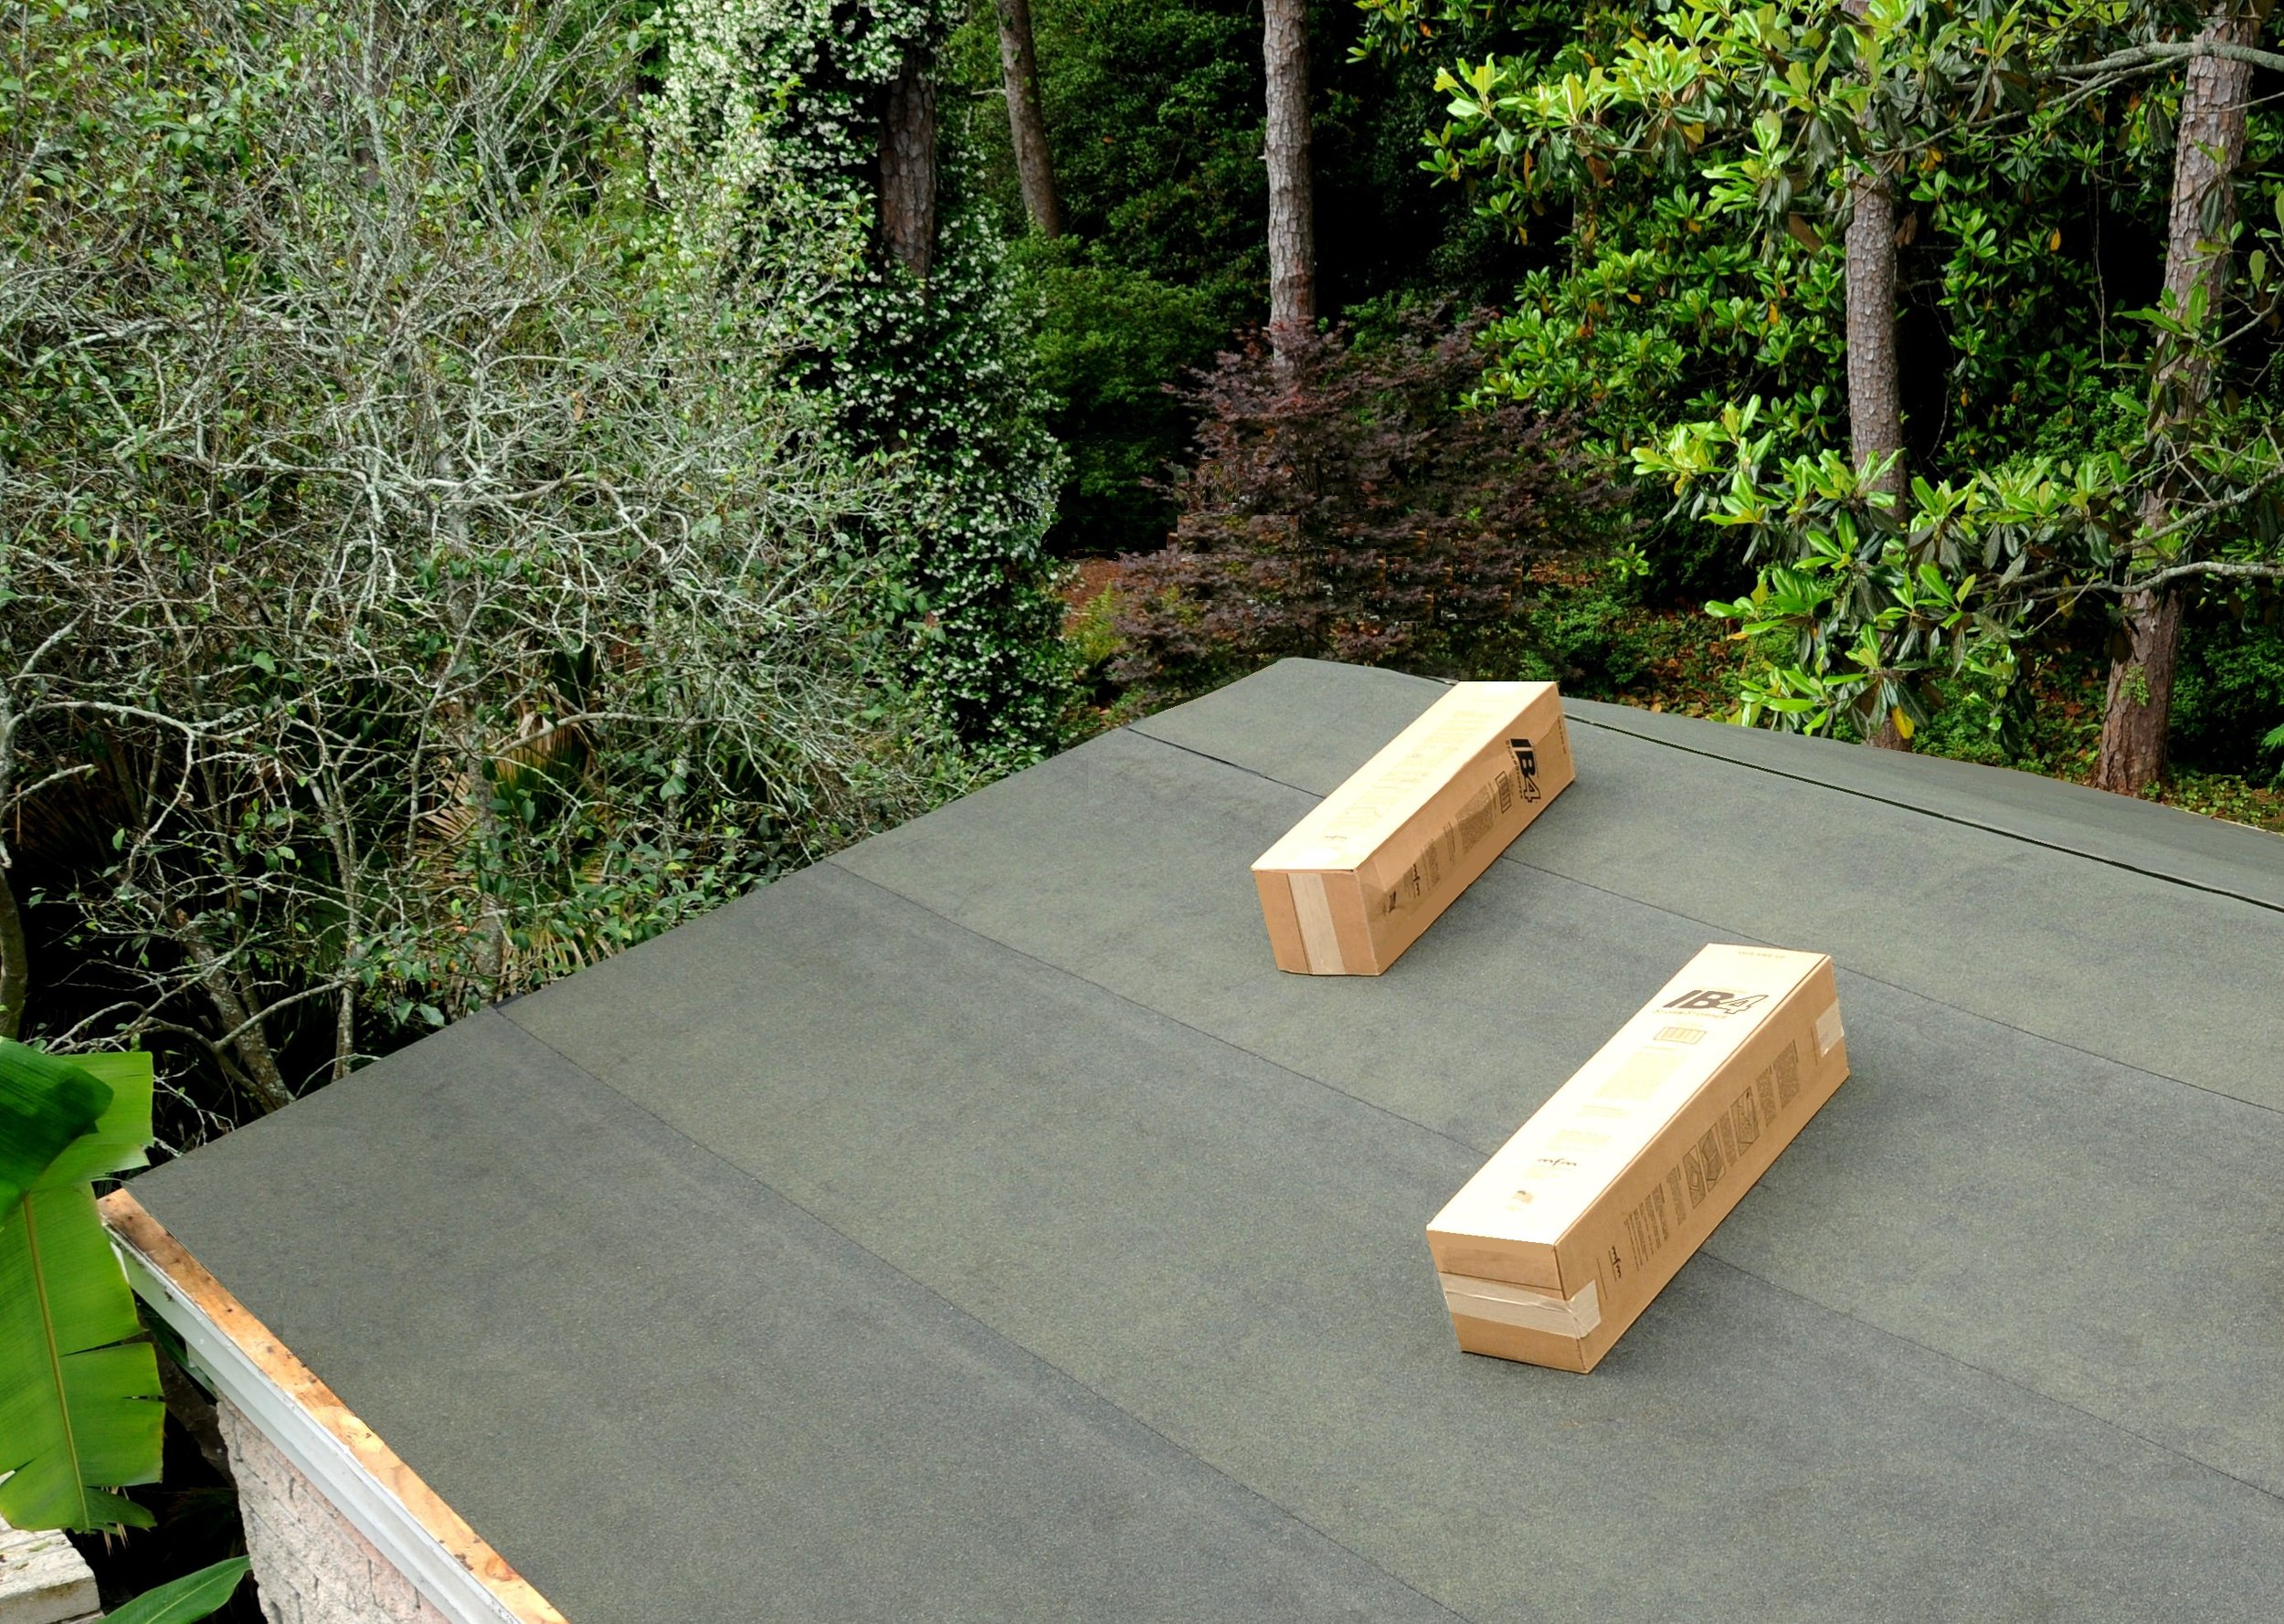 IB-4™ StormStopper offers 365 day UV exposure until the final roofing system is installed.